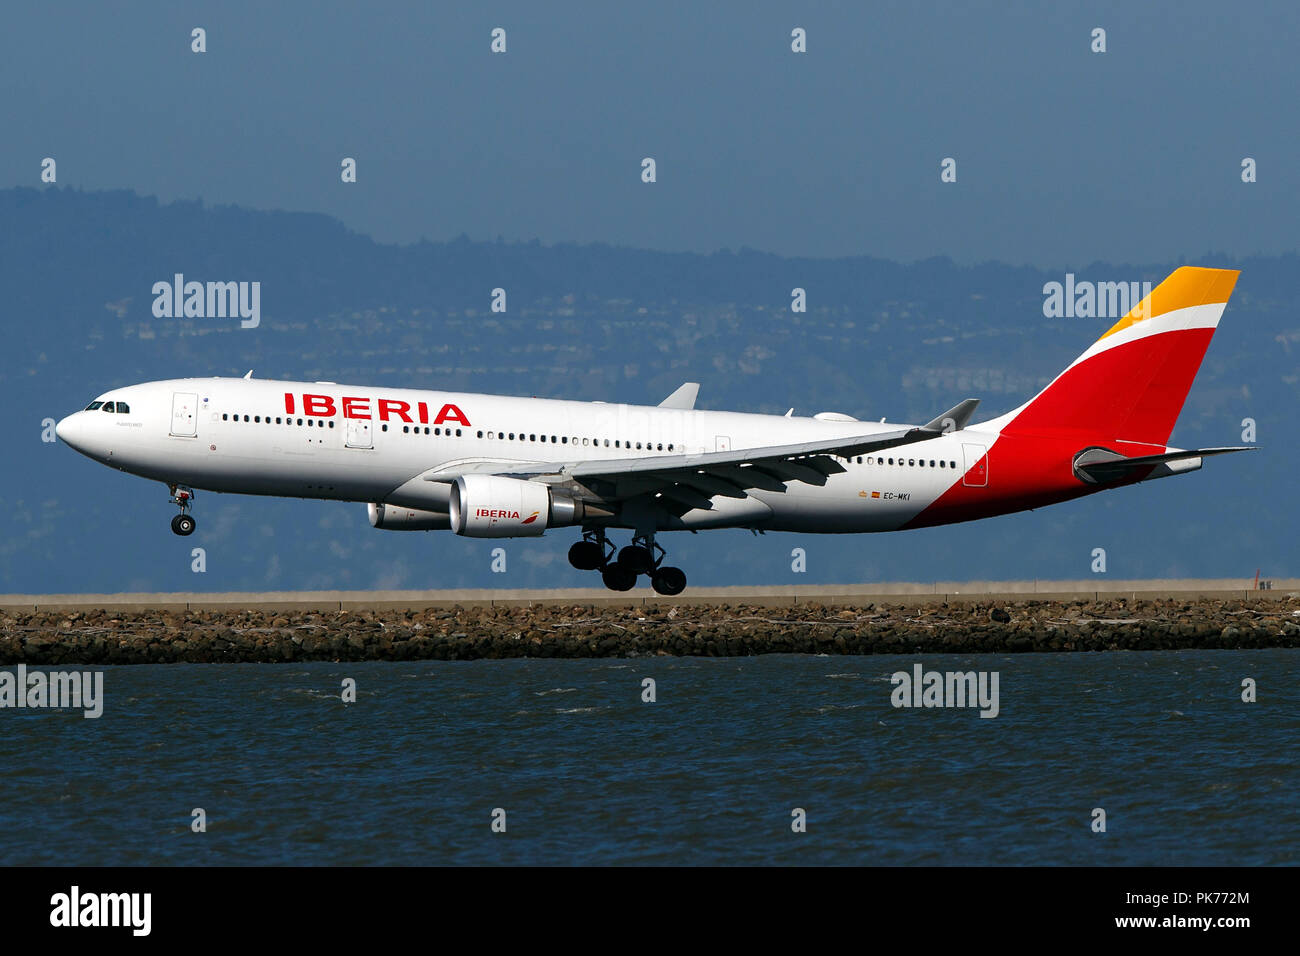 Airbus A330-202 (EC-MKI) operated by Iberia landing at San Francisco International Airport (KSFO), San Francisco, California, United States of America - Stock Image